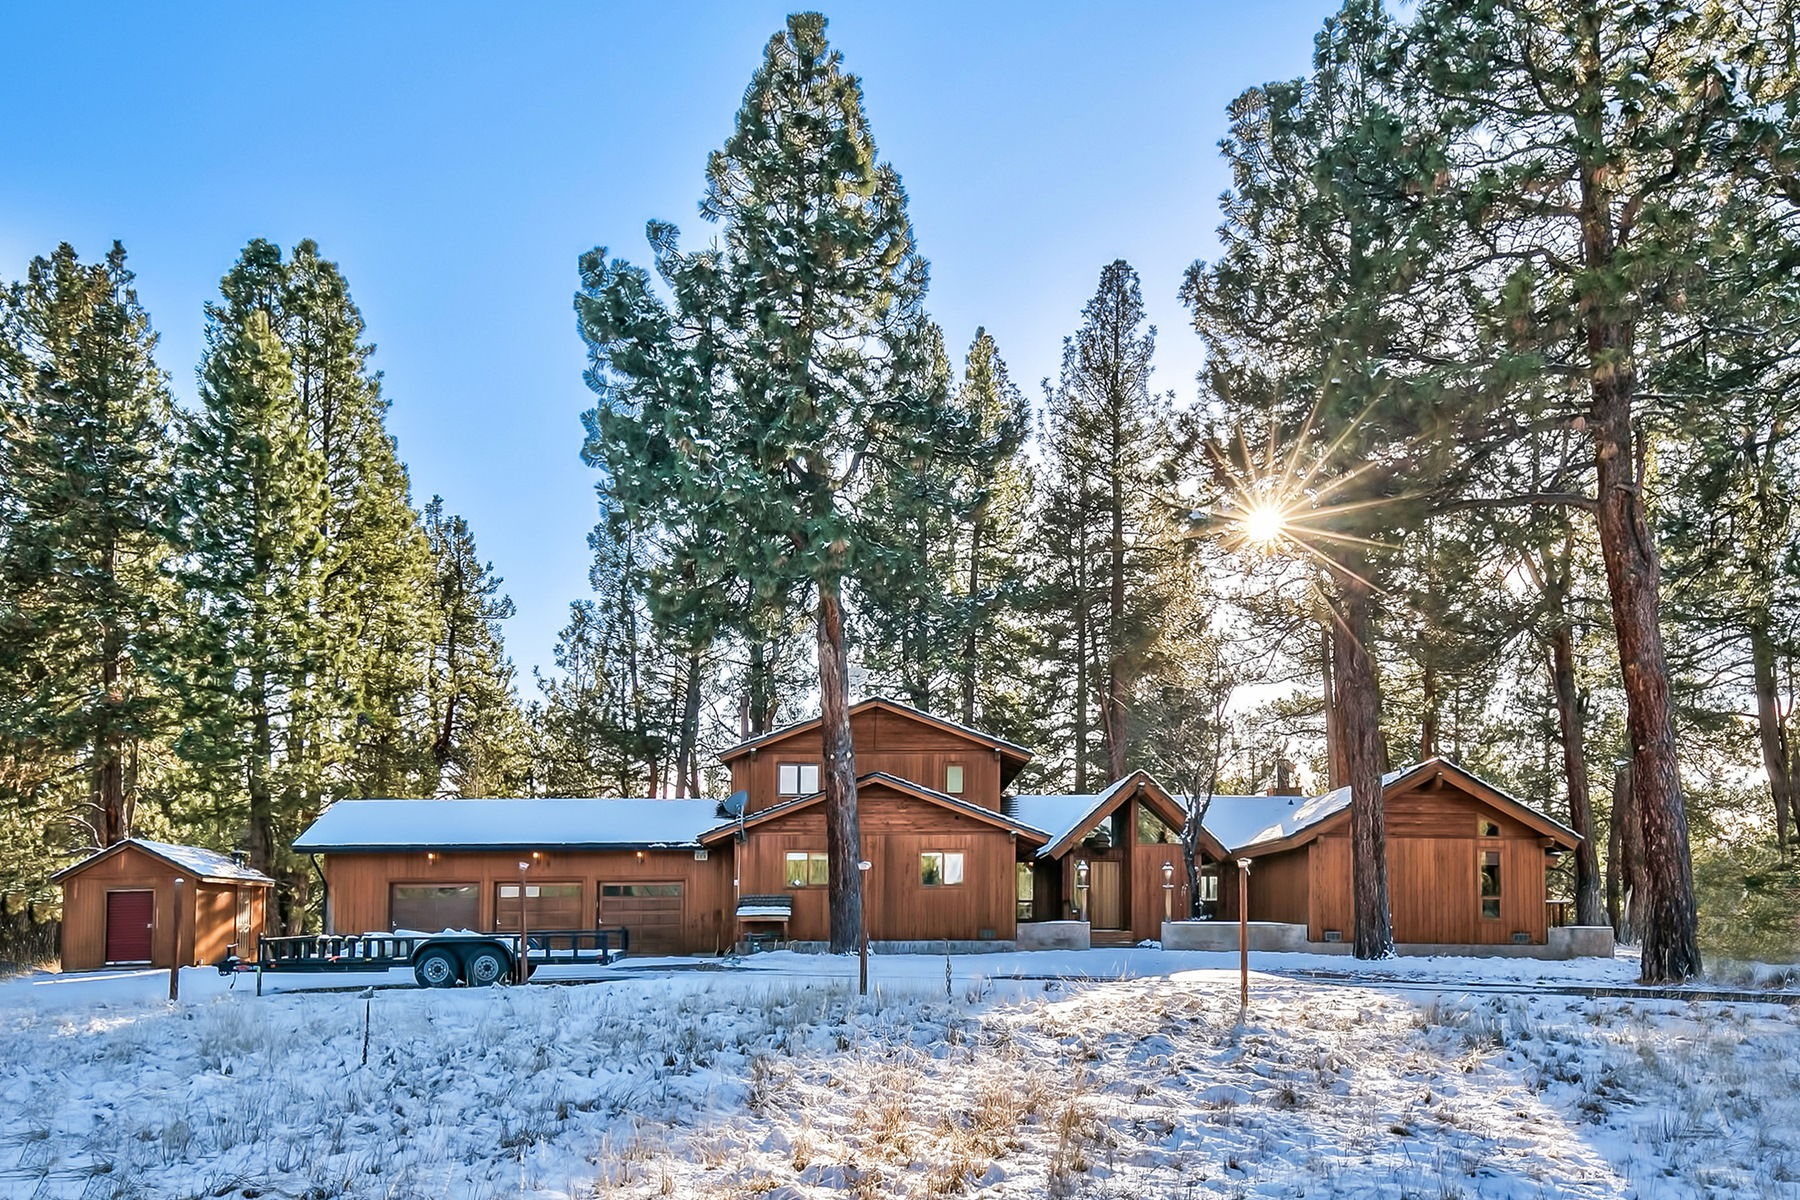 Single Family Home for Active at 11687 Moon Shadow Court 11687 Moon Shadow Ct. Truckee, California 96161 United States